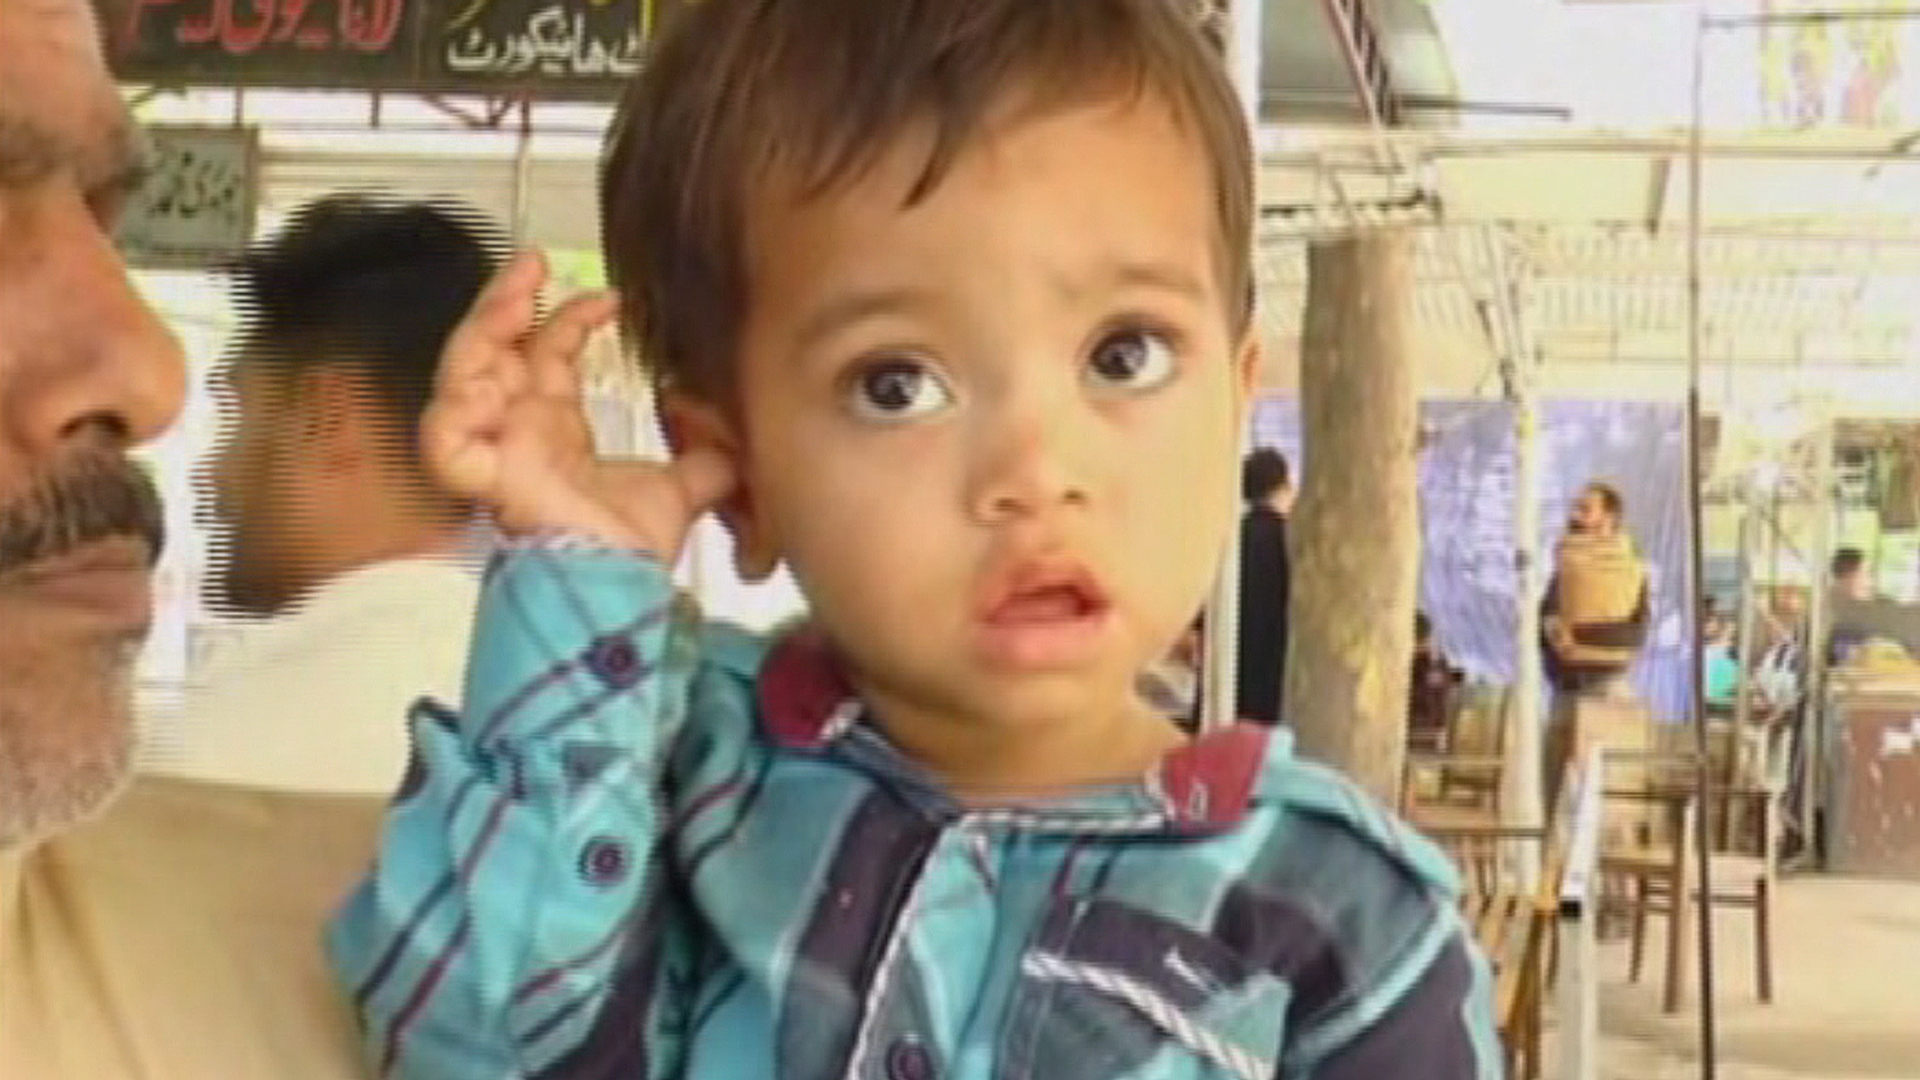 Baby Charged With Attempted Murder, Goes Into Hiding in Pakistan